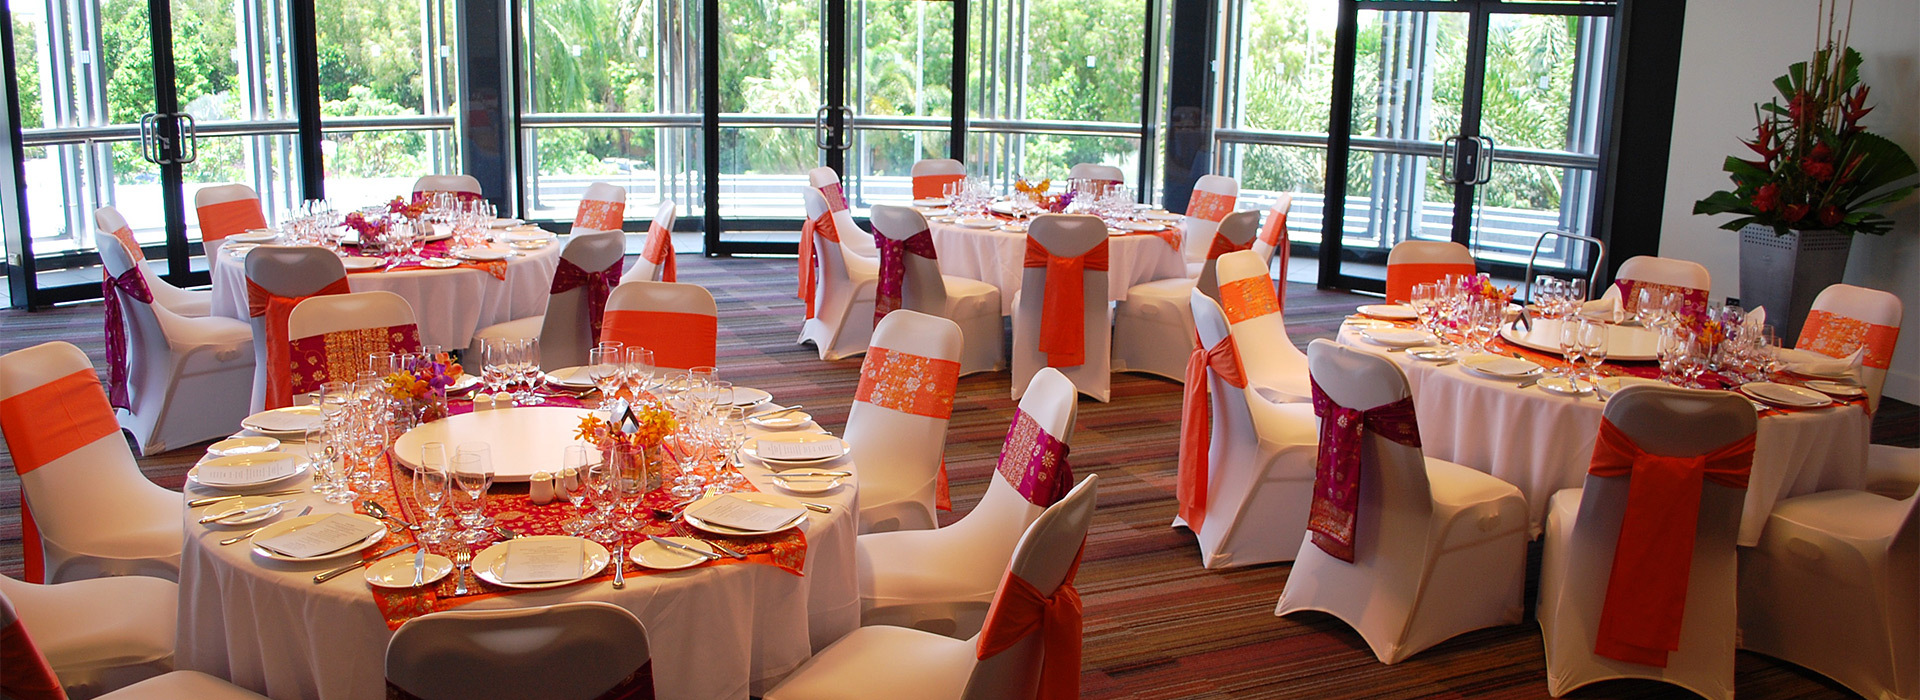 Event party equipment hire in cairns north queensland